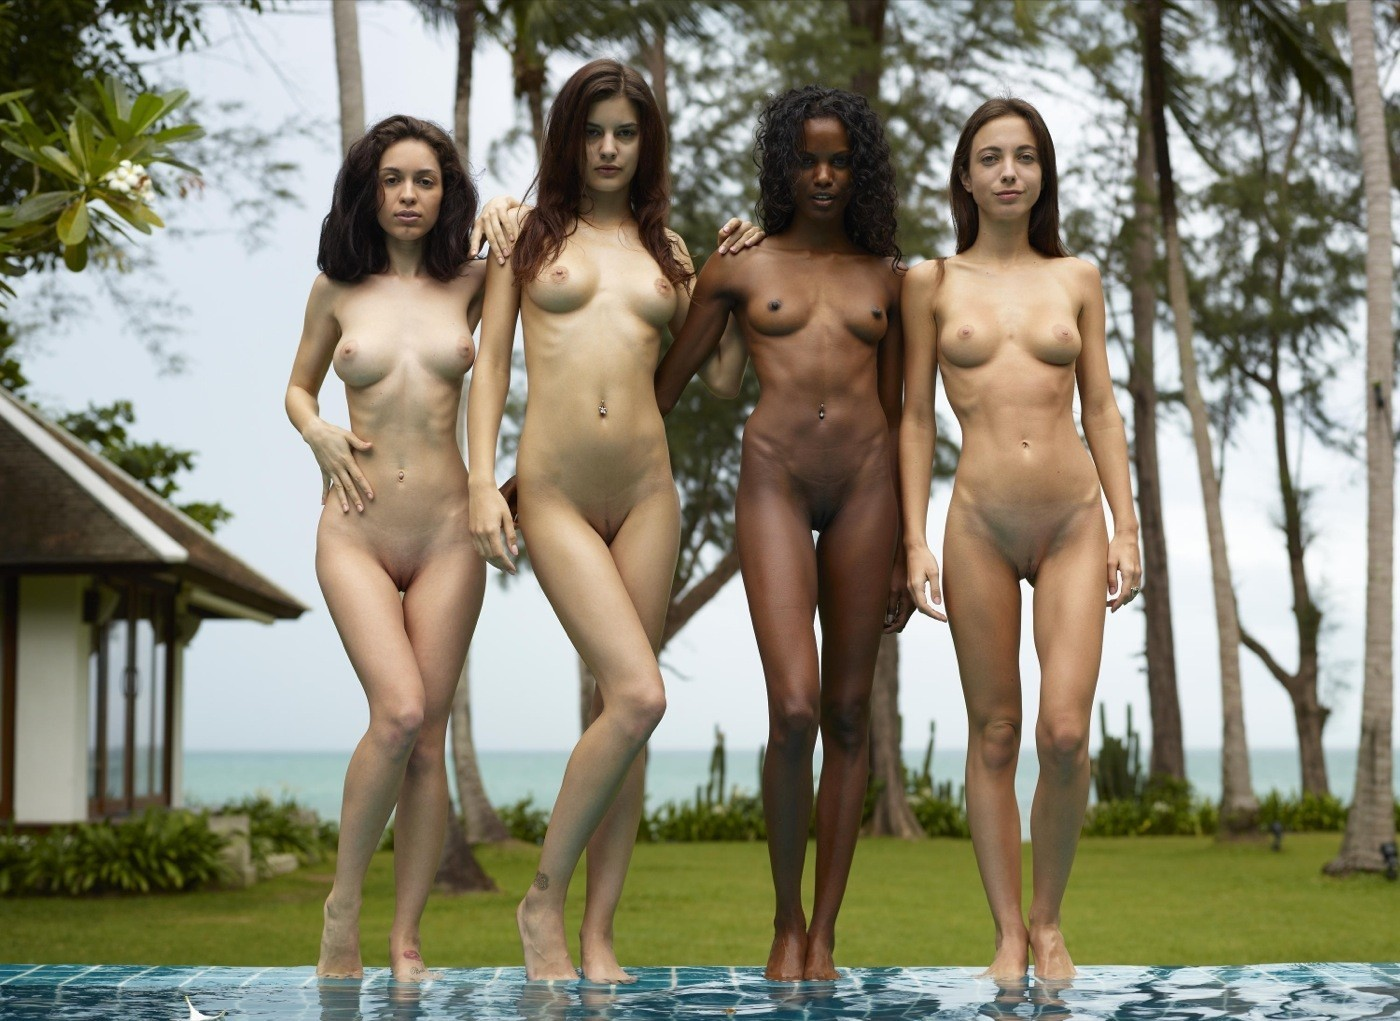 naked-girls-in-group-mix-vol3-65